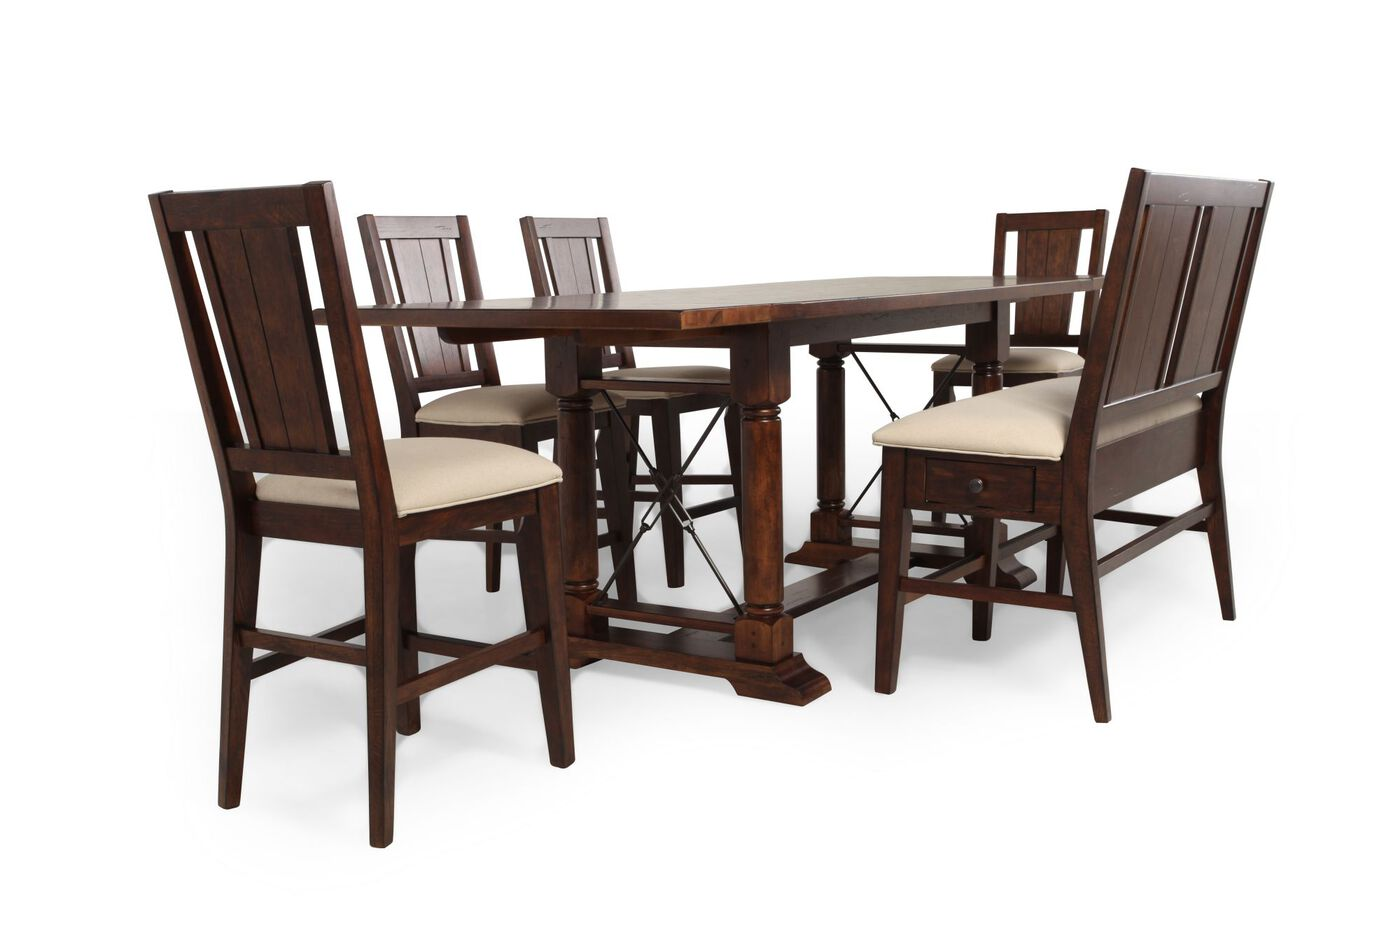 Broyhill Attic Rustic Oak SixPiece Pub Set Mathis Brothers - Broyhill counter height dining set